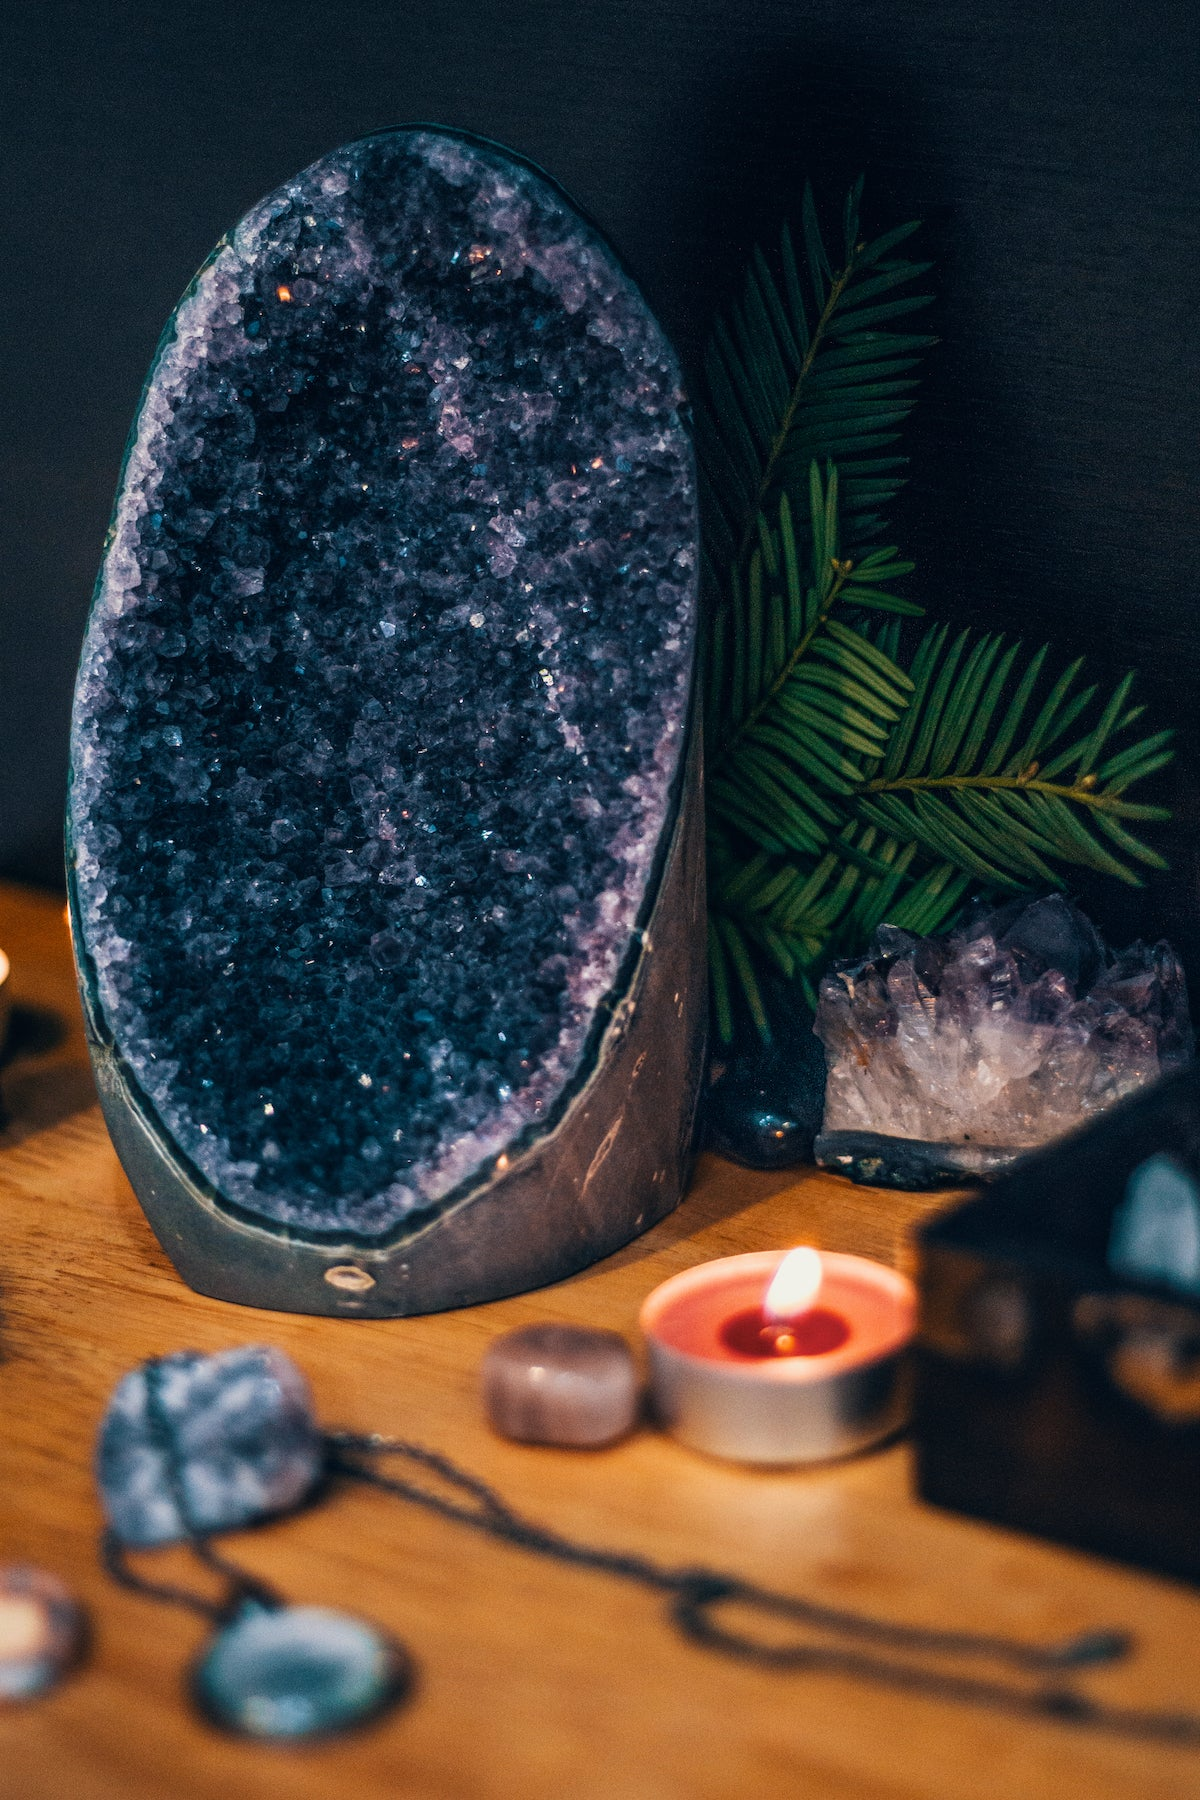 A stress-free workspace with rocks and candles